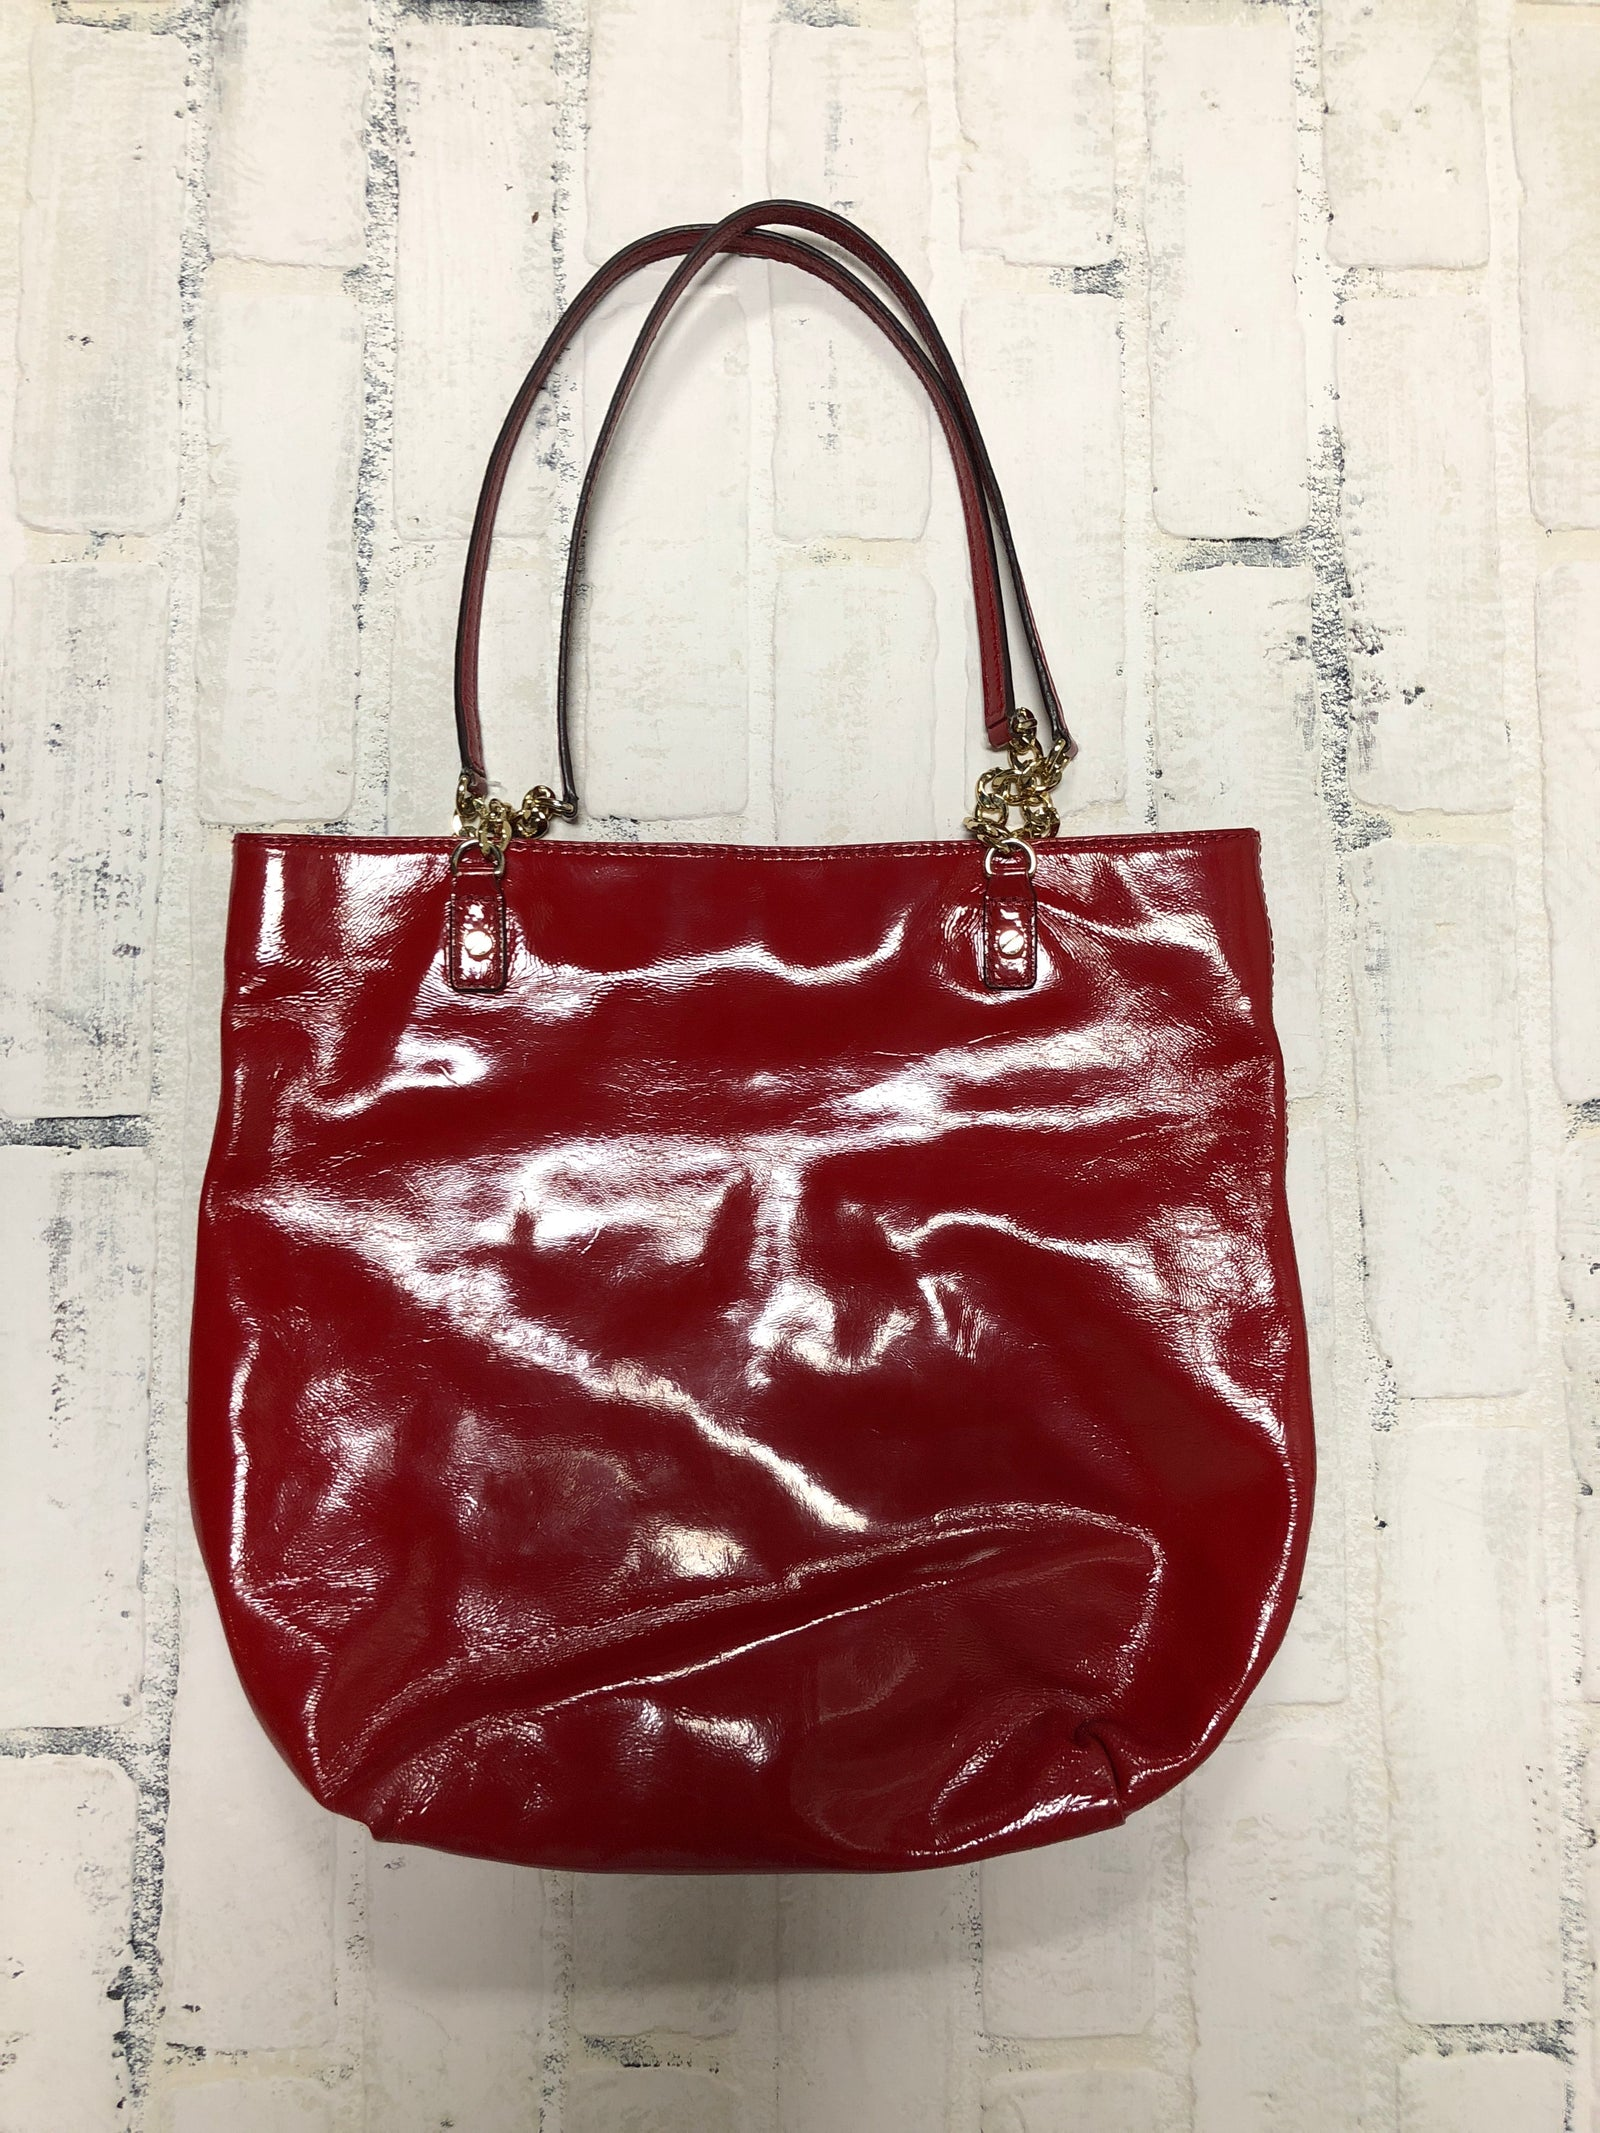 Michael Kors Patent Leather Tote